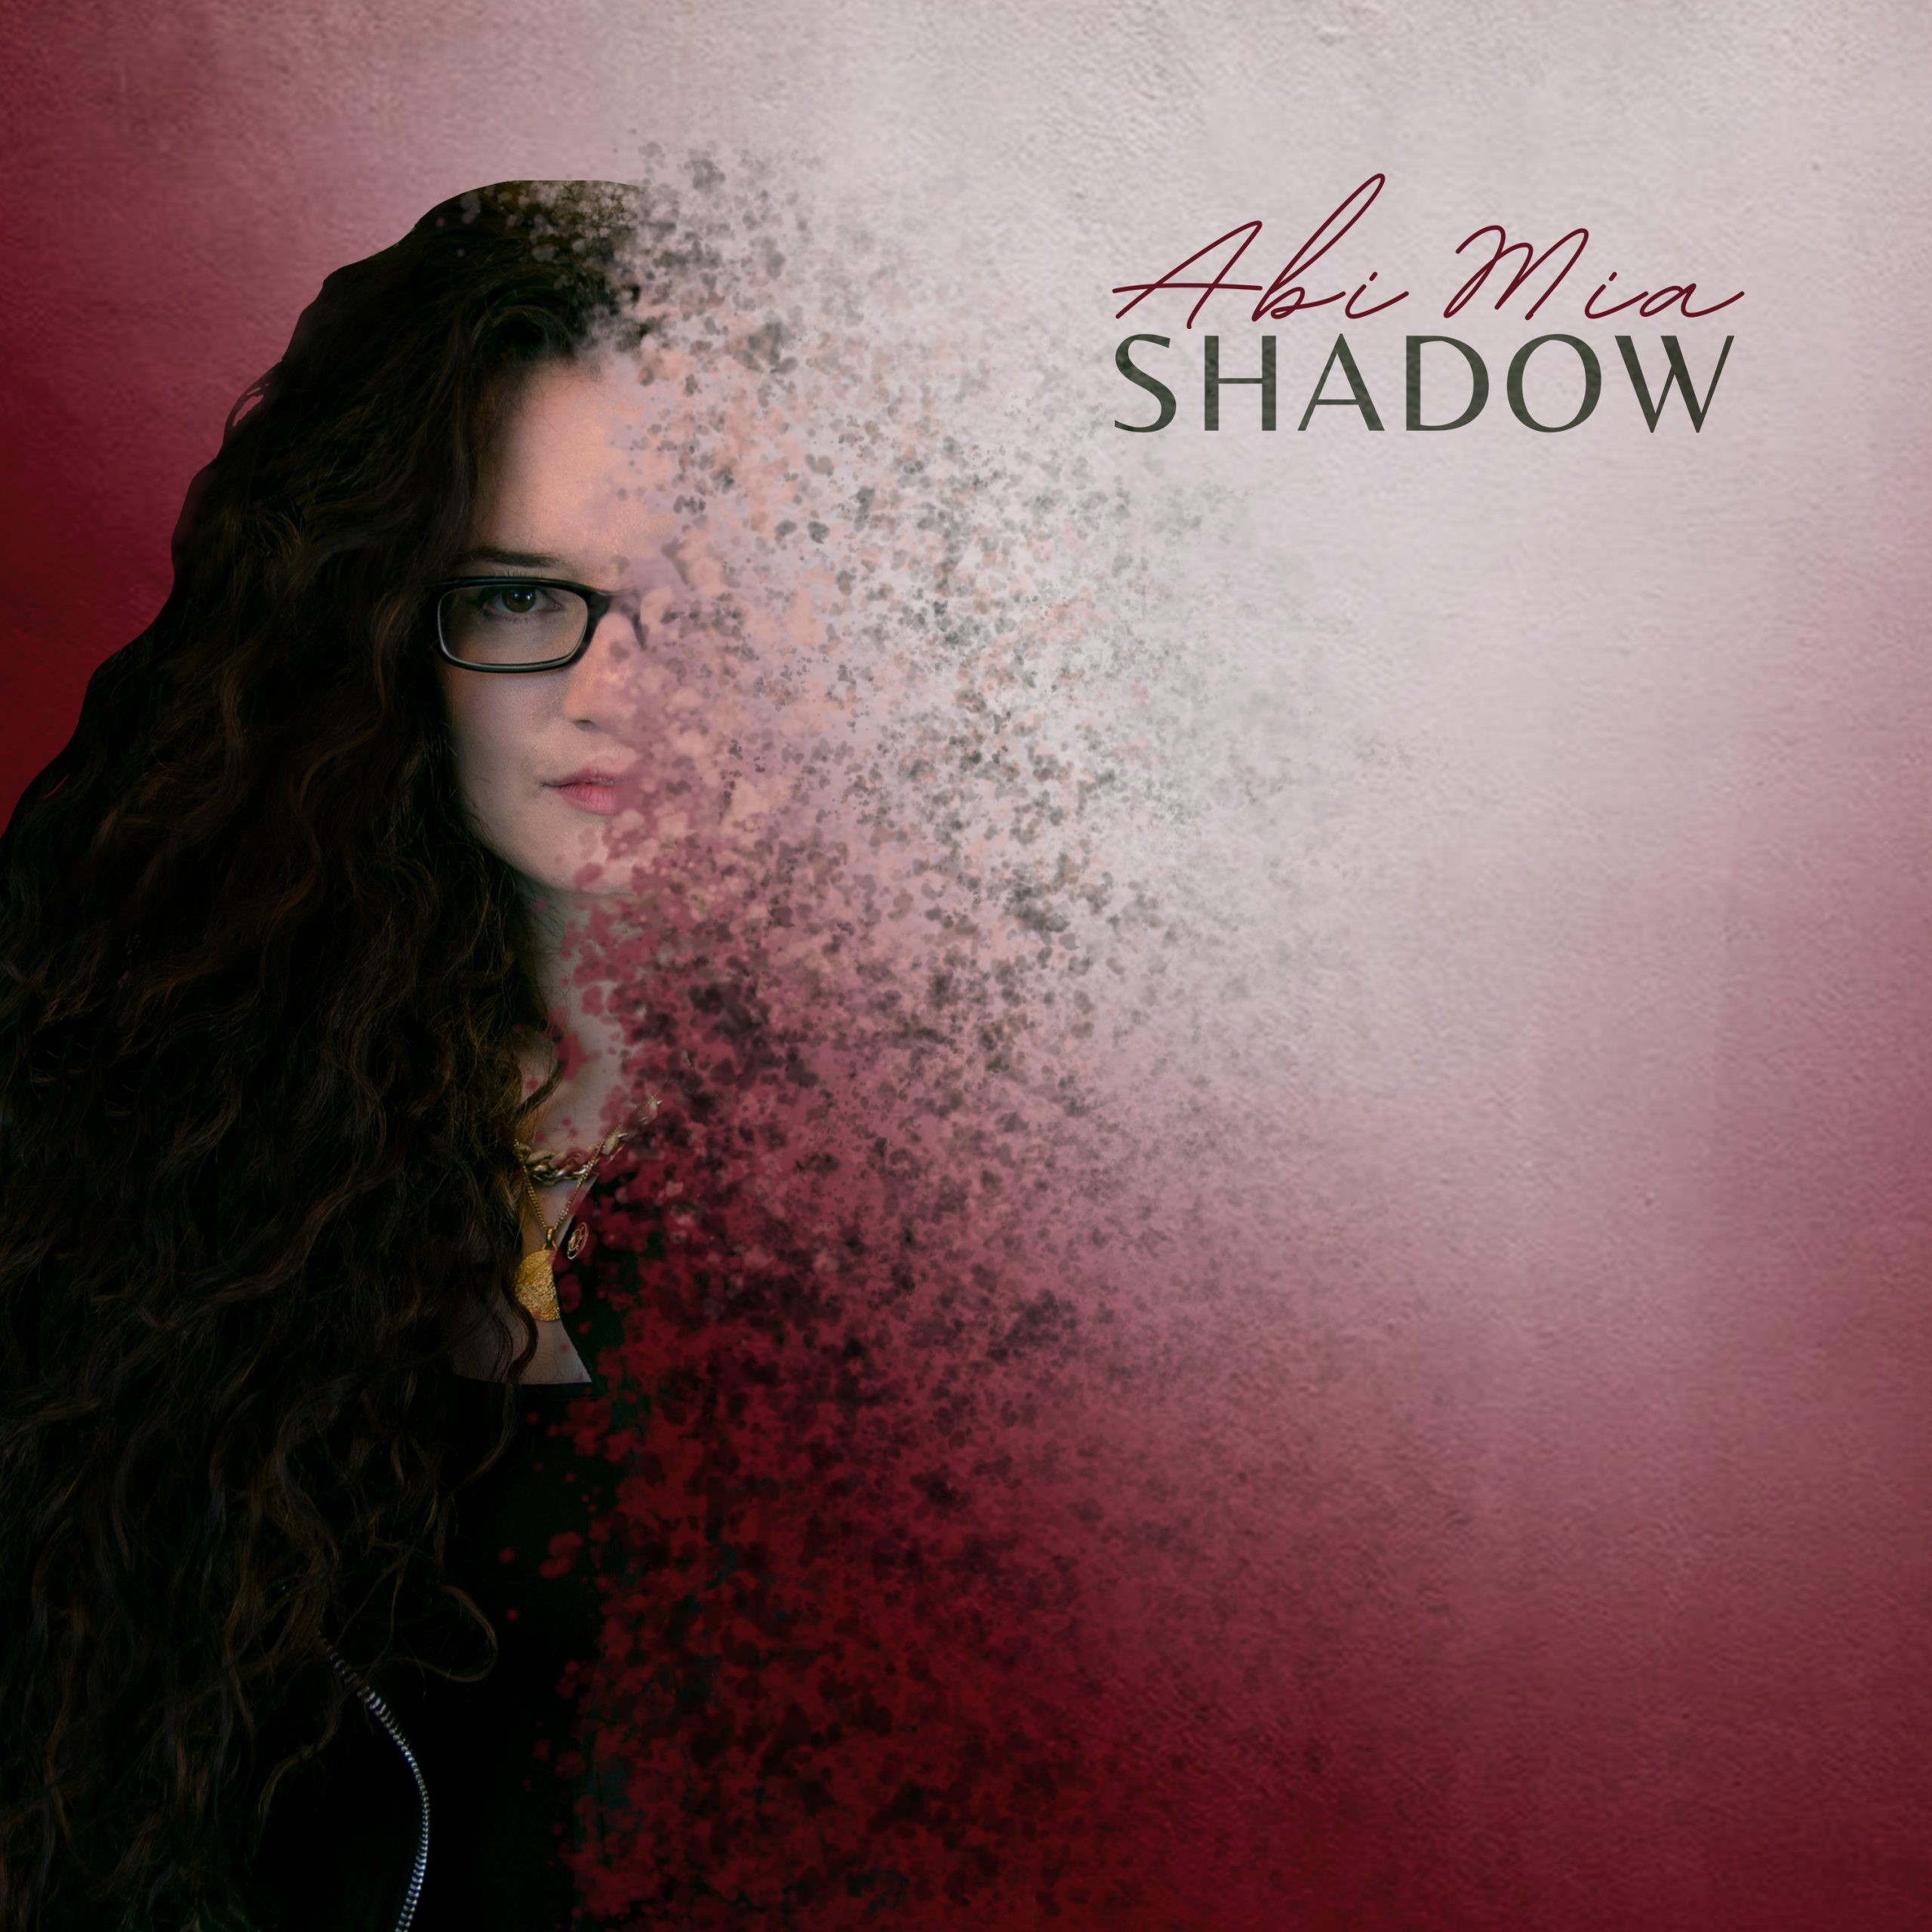 """Read more about the article Abi Mia's """"Shadow"""": Rediscovering Yourself Once More"""